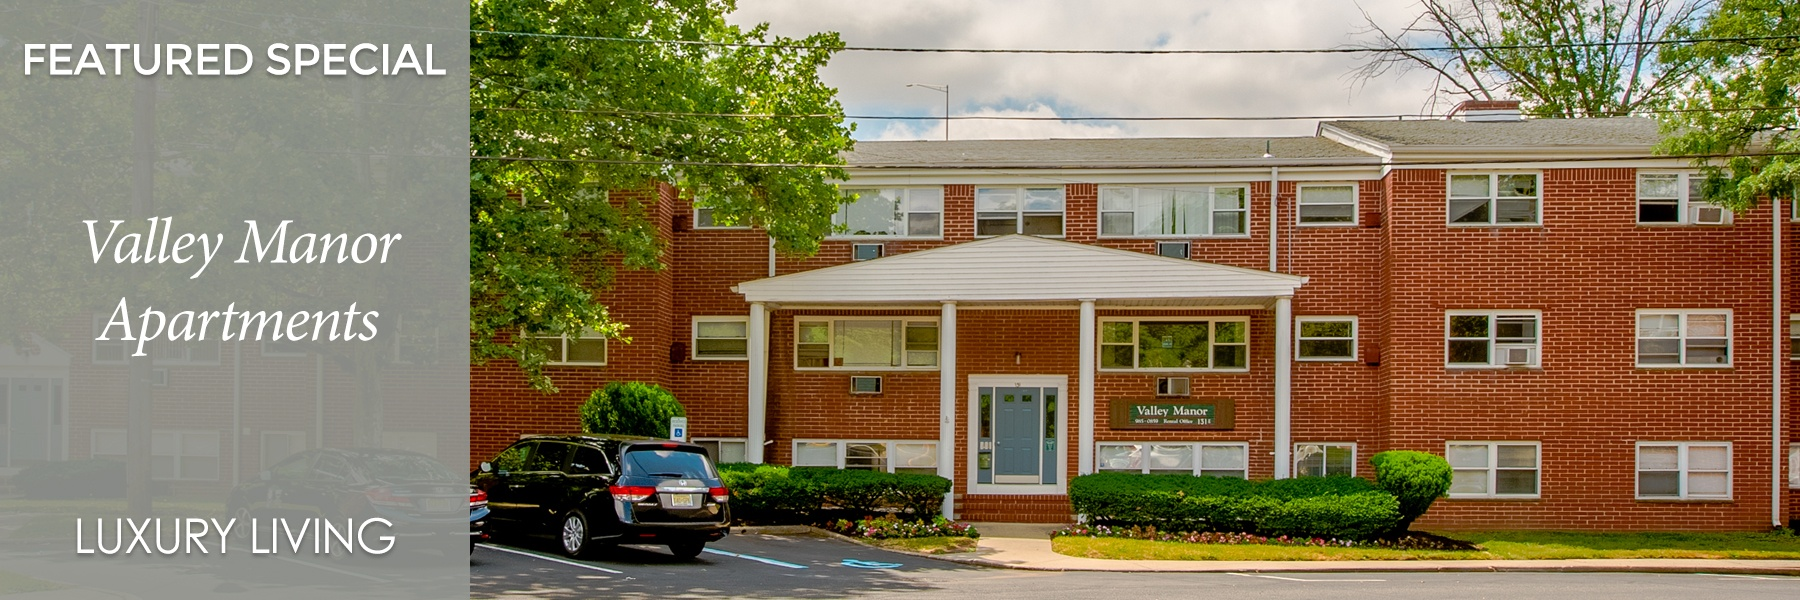 Valley Manor Apartments for rent in Edison, NJ Specials